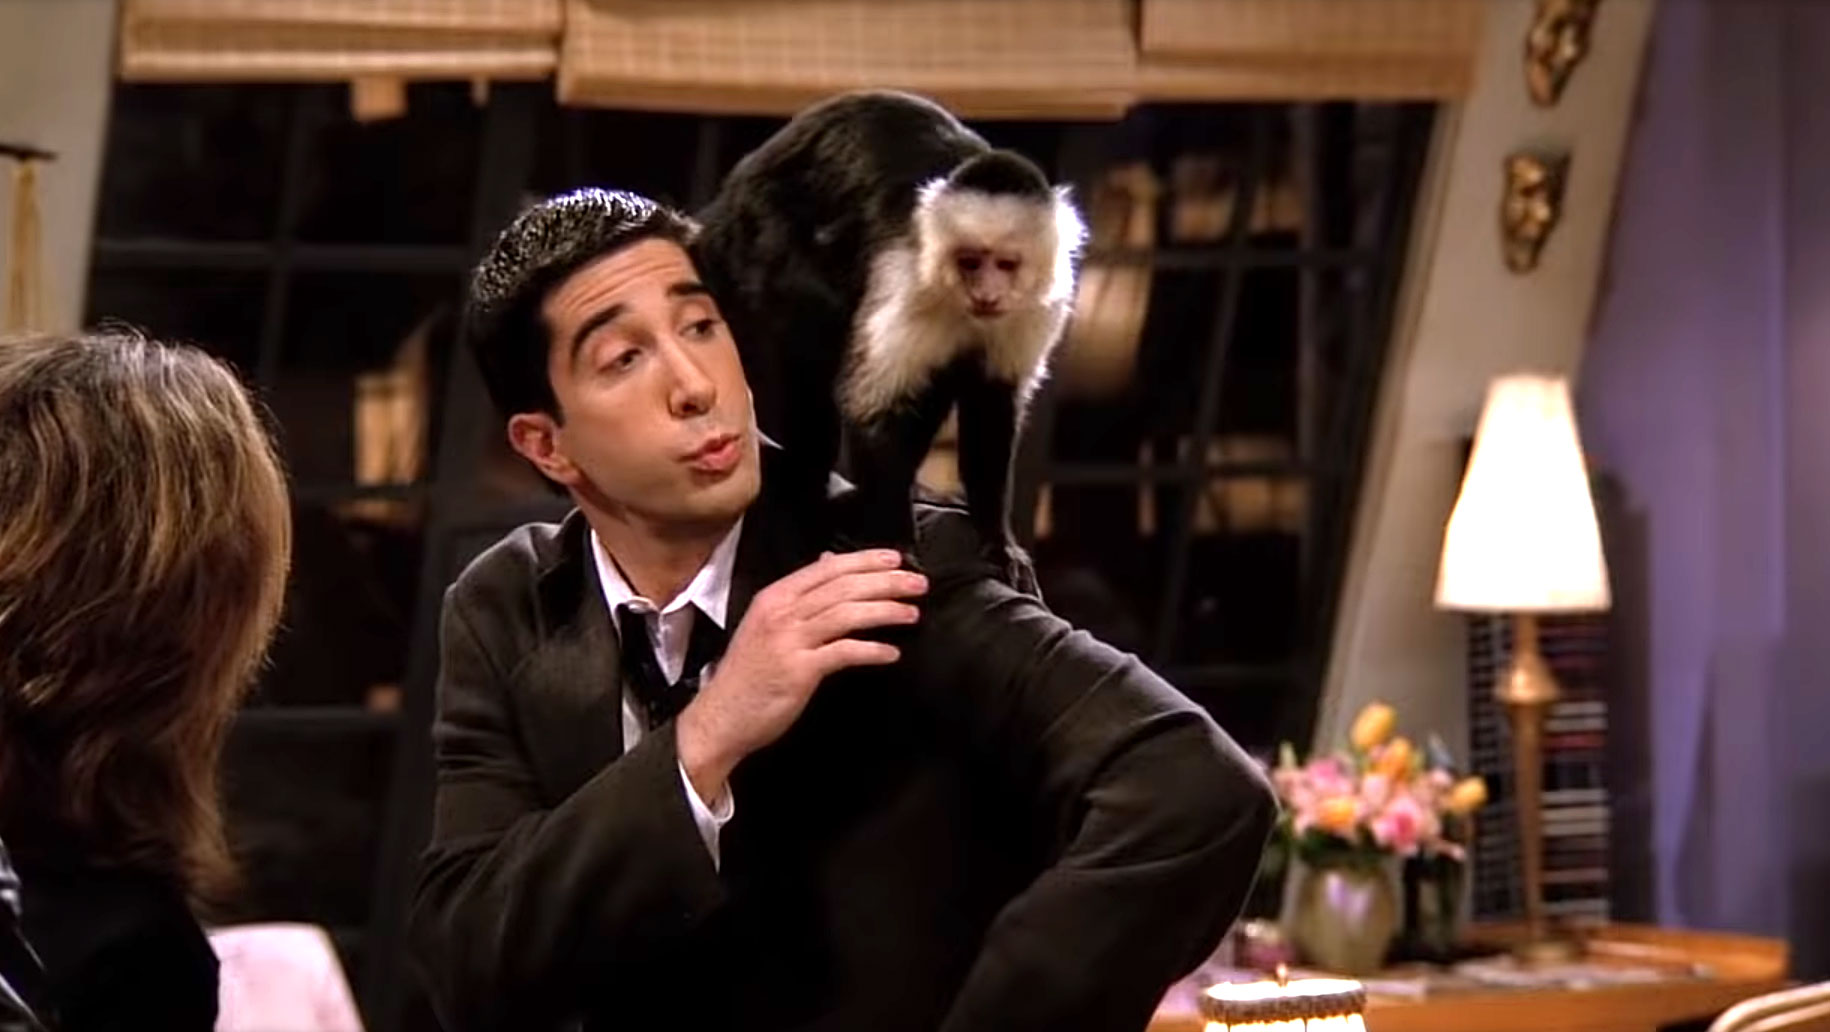 Marcel the Monkey From 'Friends' Is Returning to TV ...